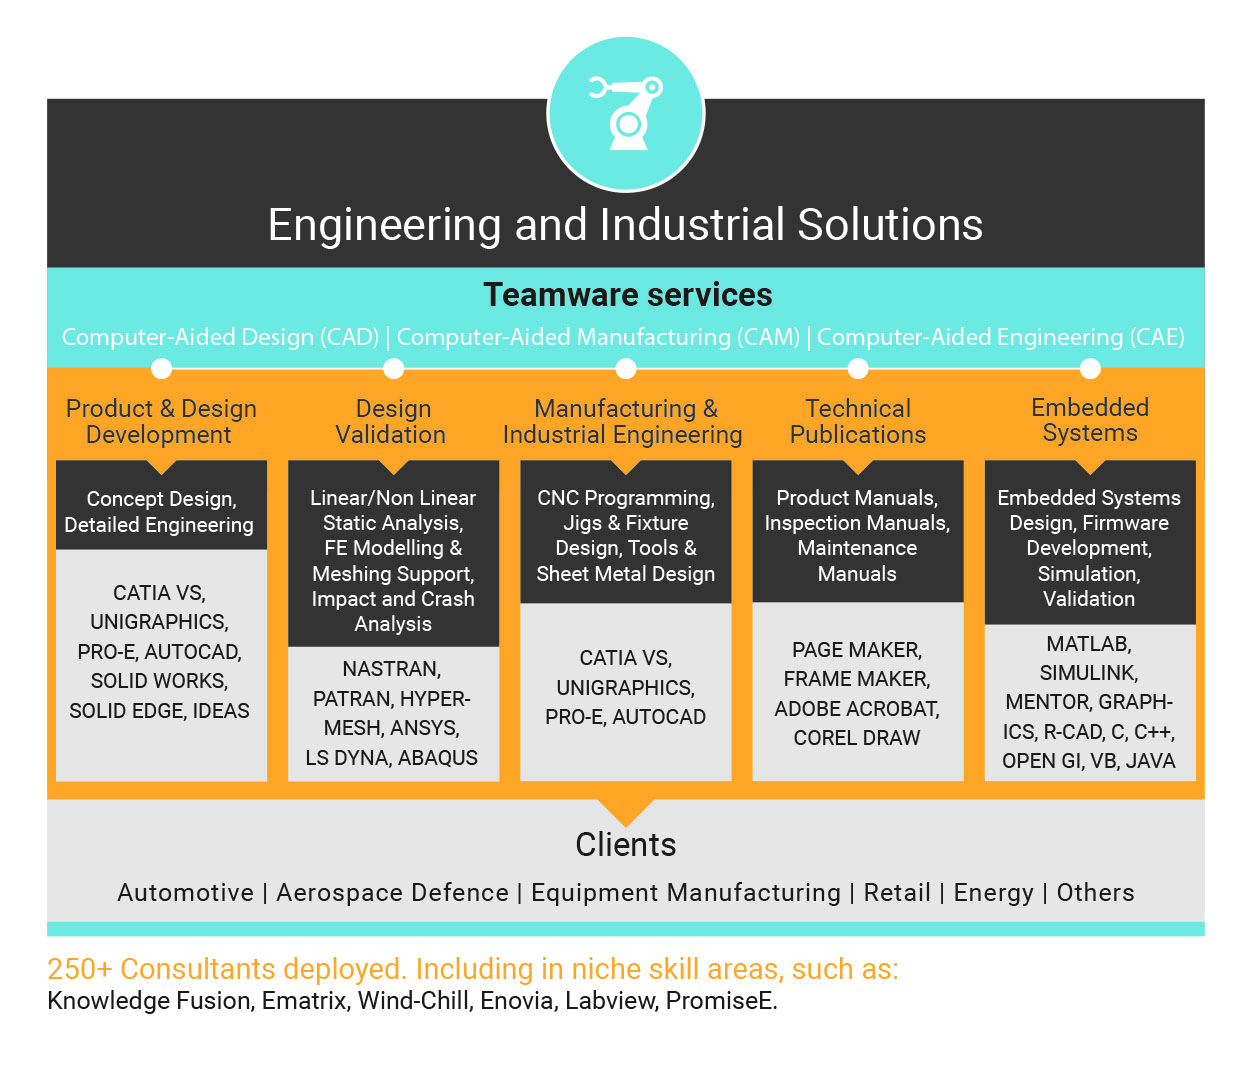 Engineering and Industrial Solutions